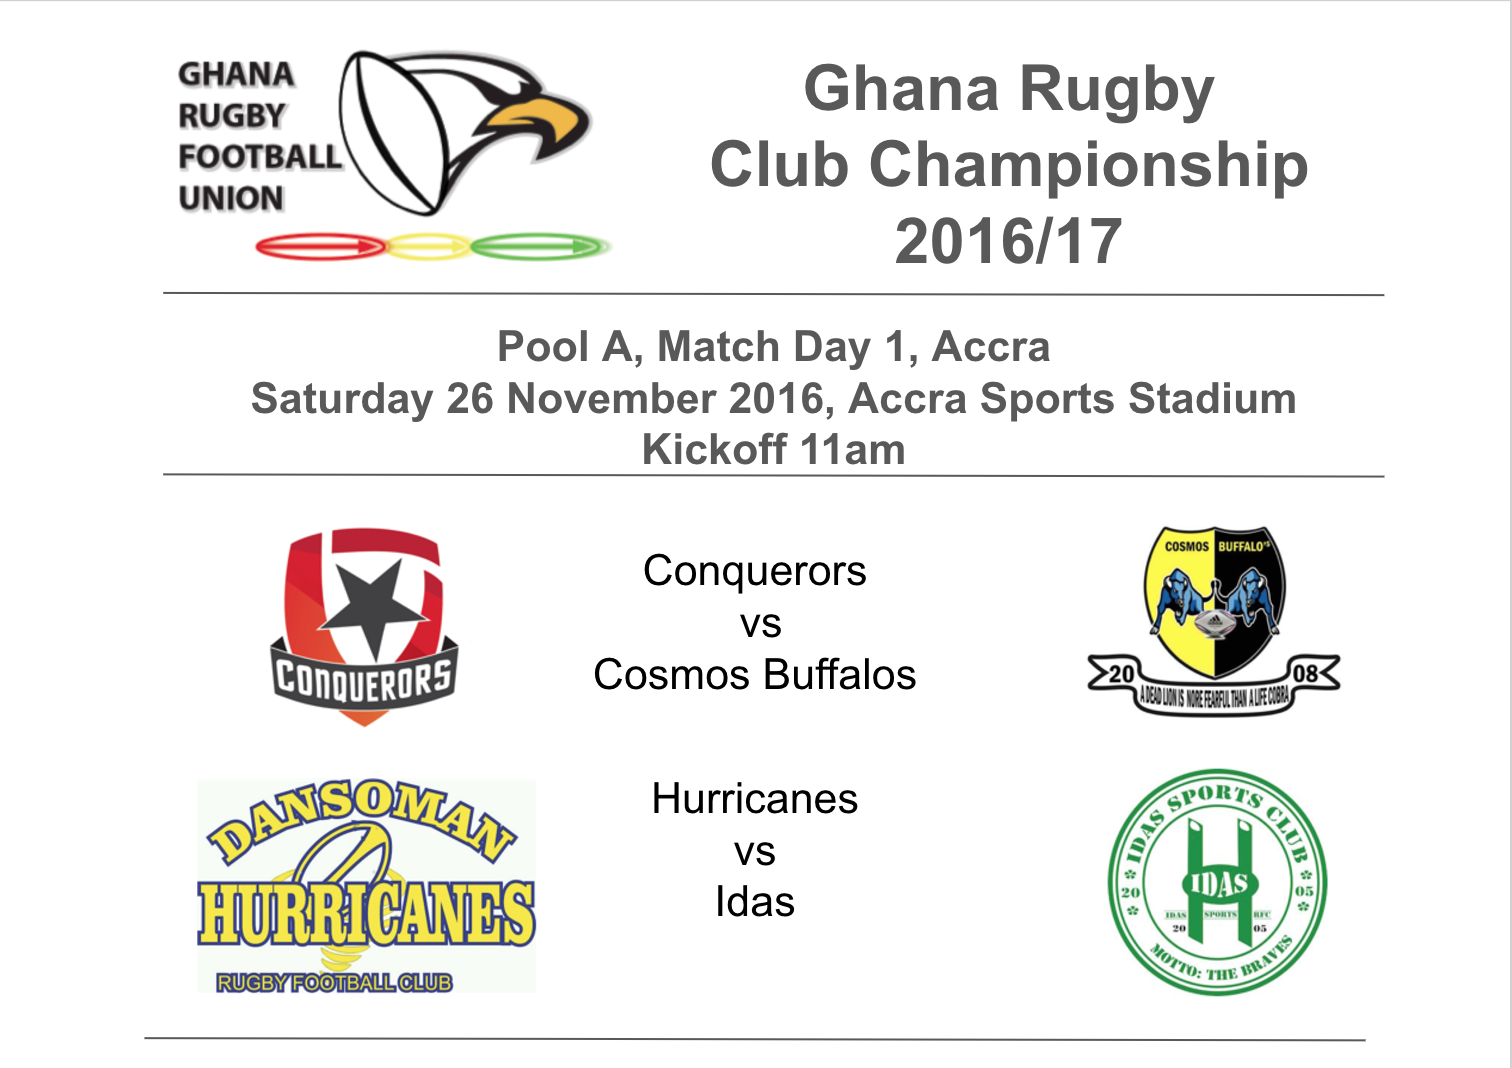 Pool A Match Day 1 Fixtures.png